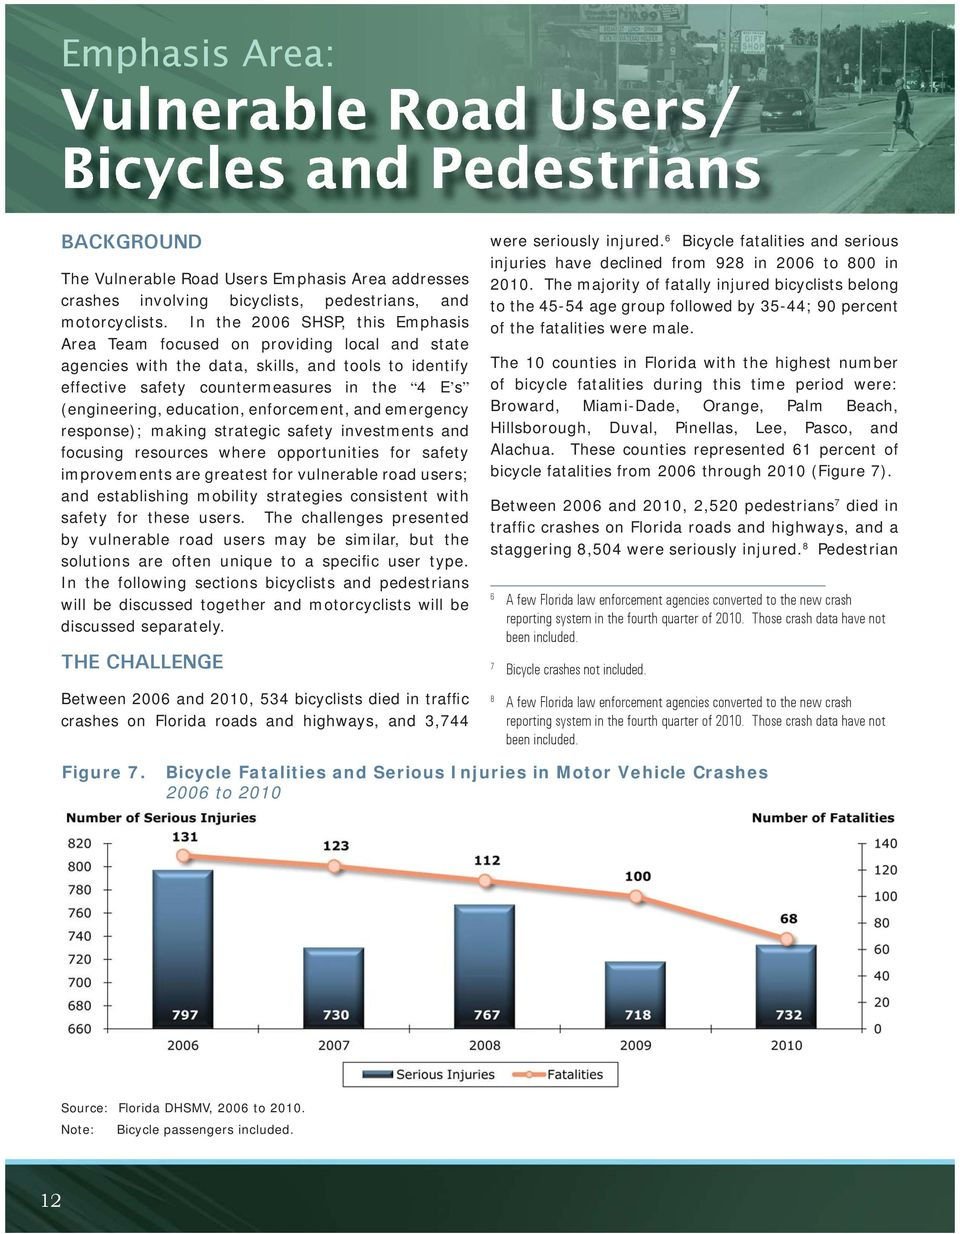 education, enforcement, and emergency response); making strategic safety investments and focusing resources where opportunities for safety improvements are greatest for vulnerable road users; and